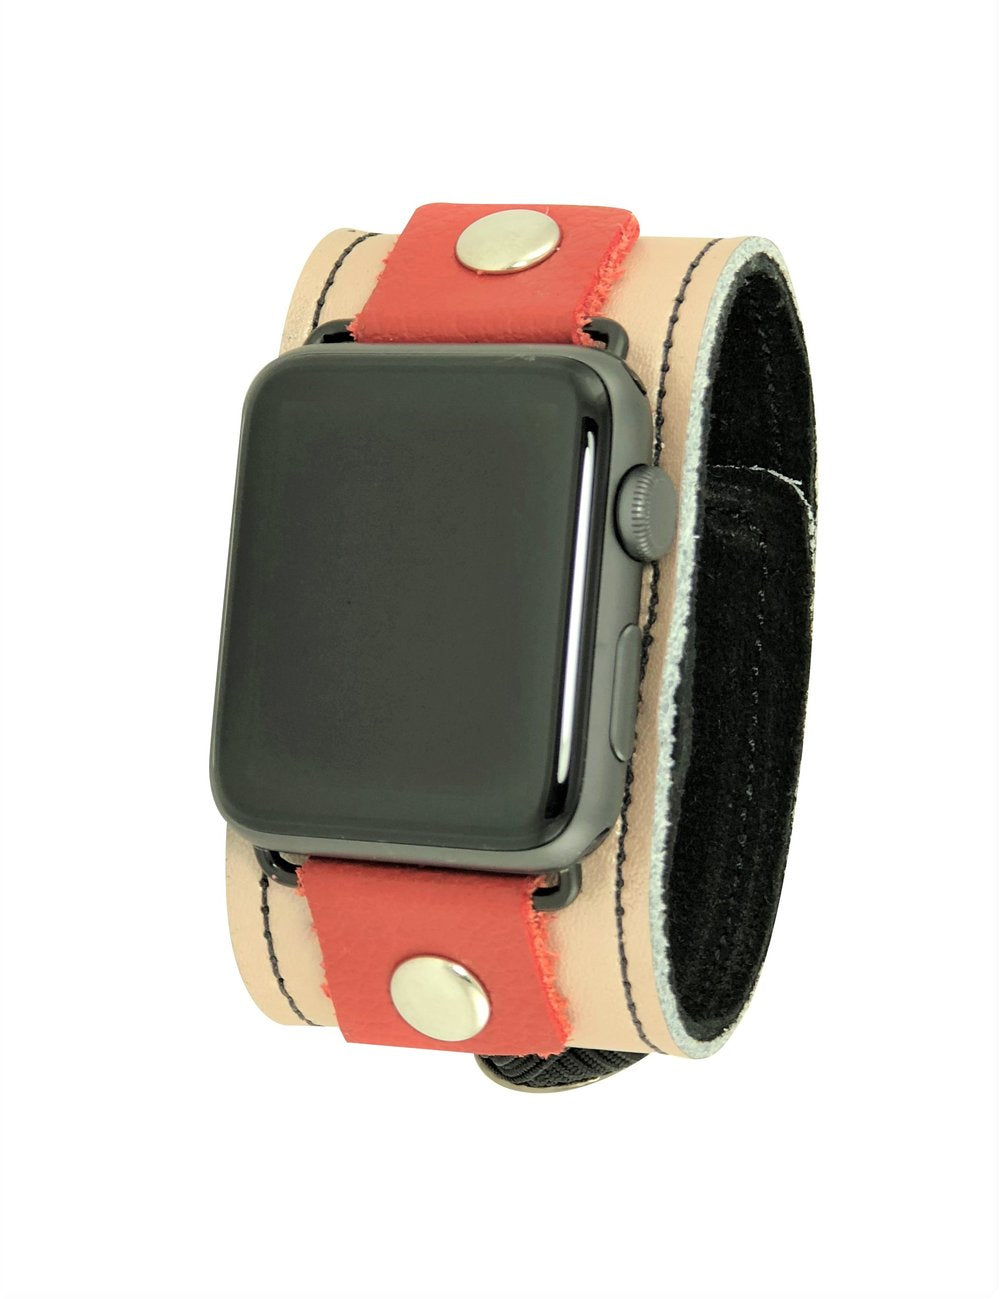 NAN Apple Watch Band - Tan & Red